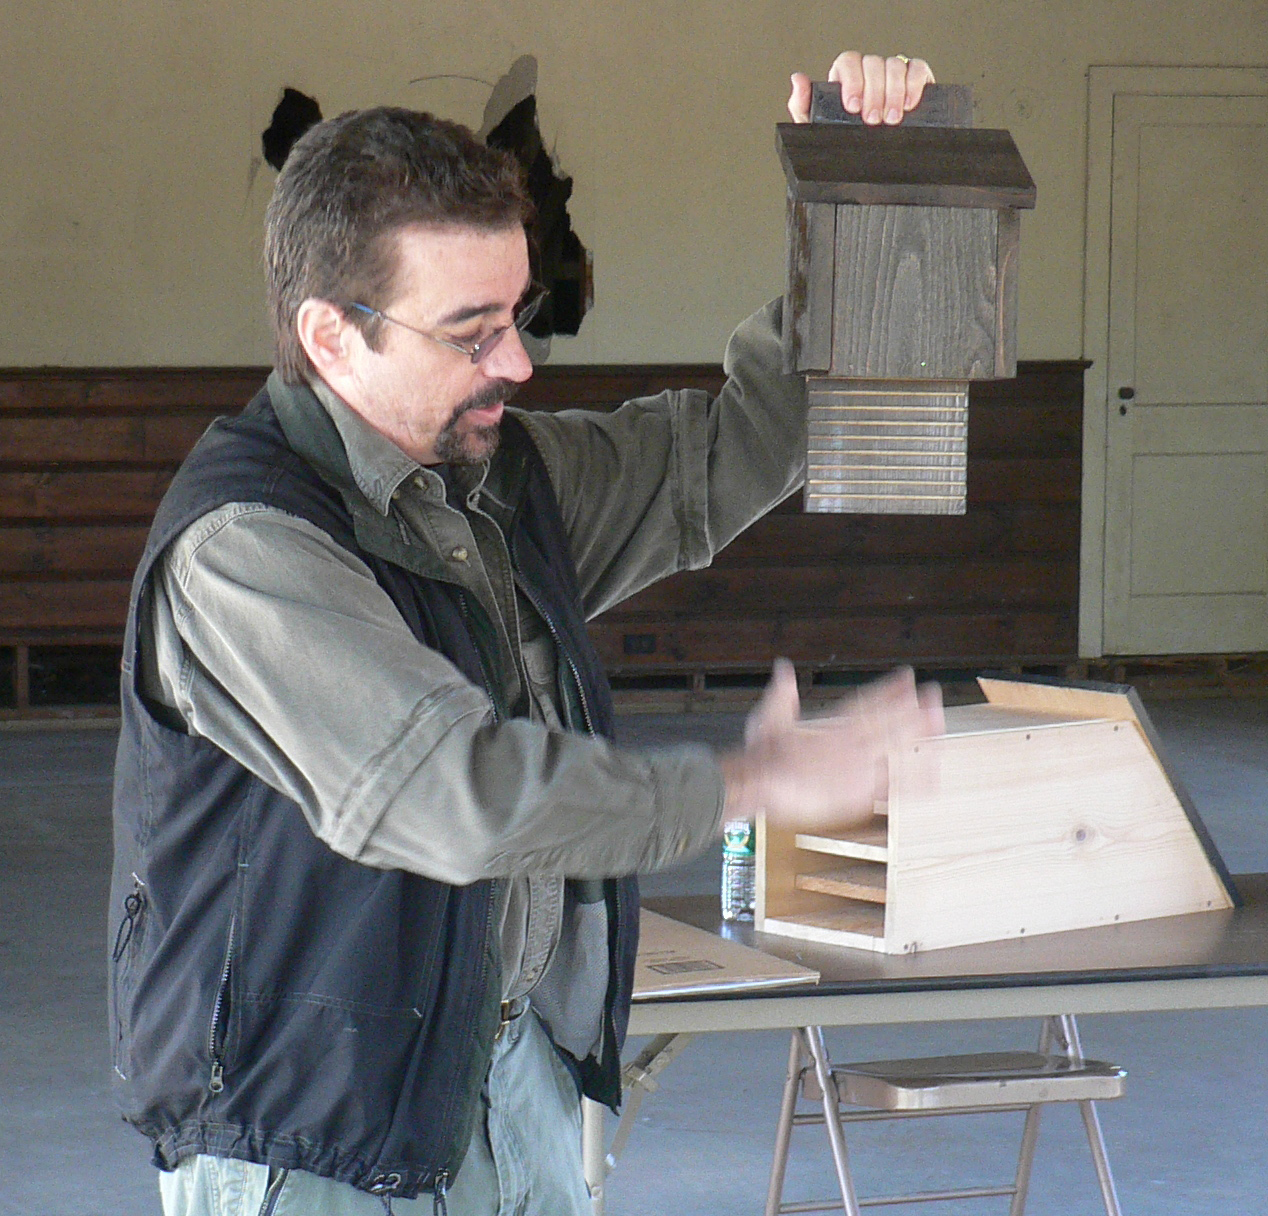 LIU professor and bat biologist Dr. Bill Schutt shows some examples of bat houses and how they are utilized by bats as roosting sites.